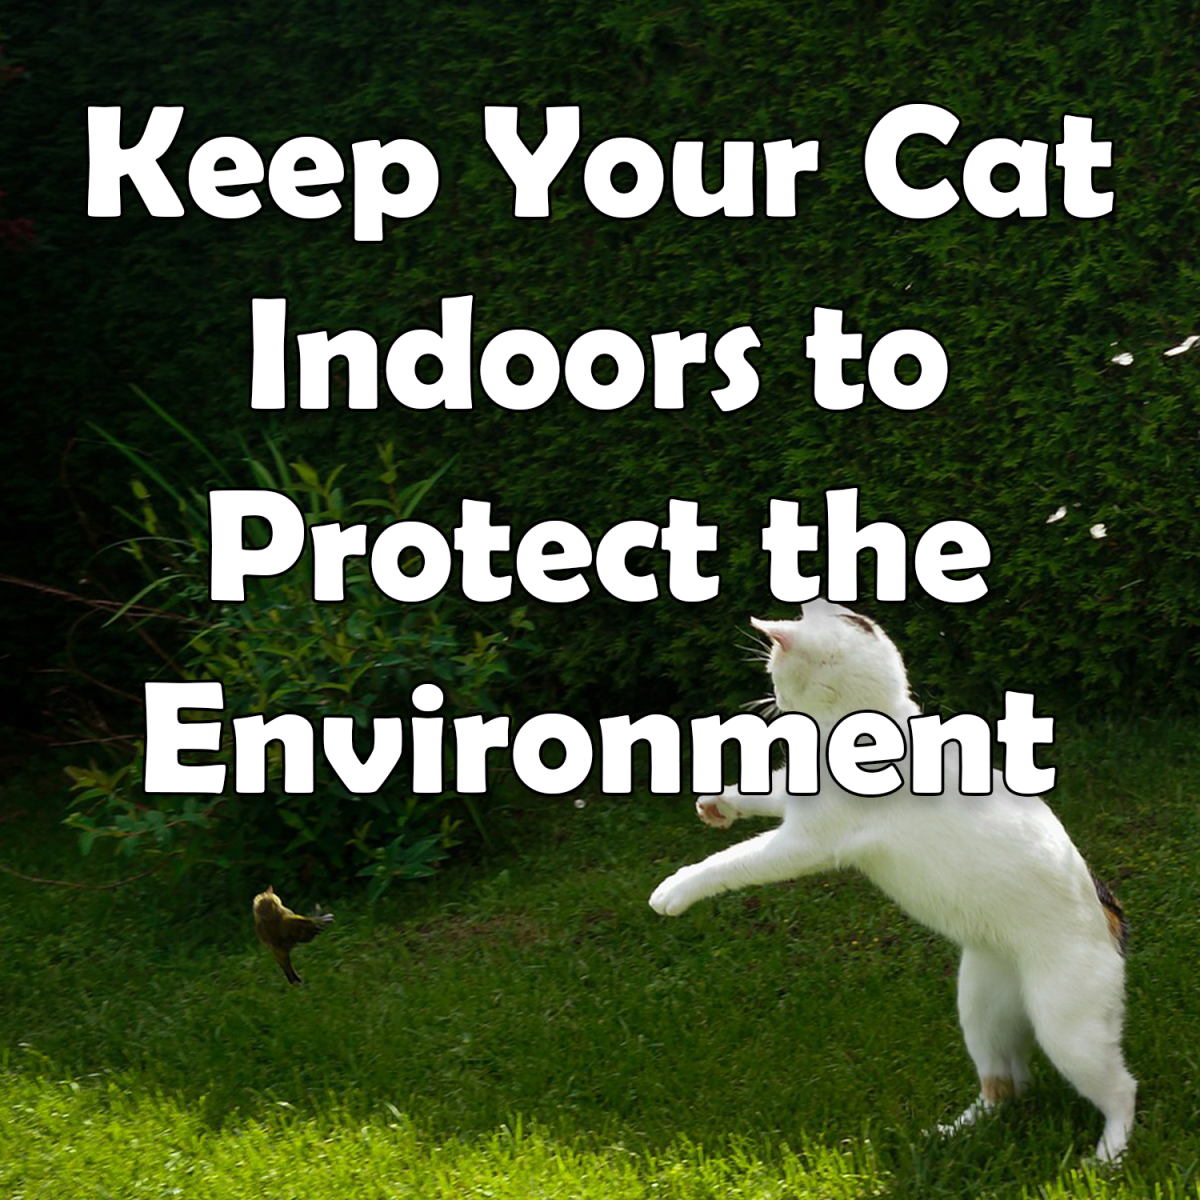 Keep Your Cat Indoors to Protect the Environment